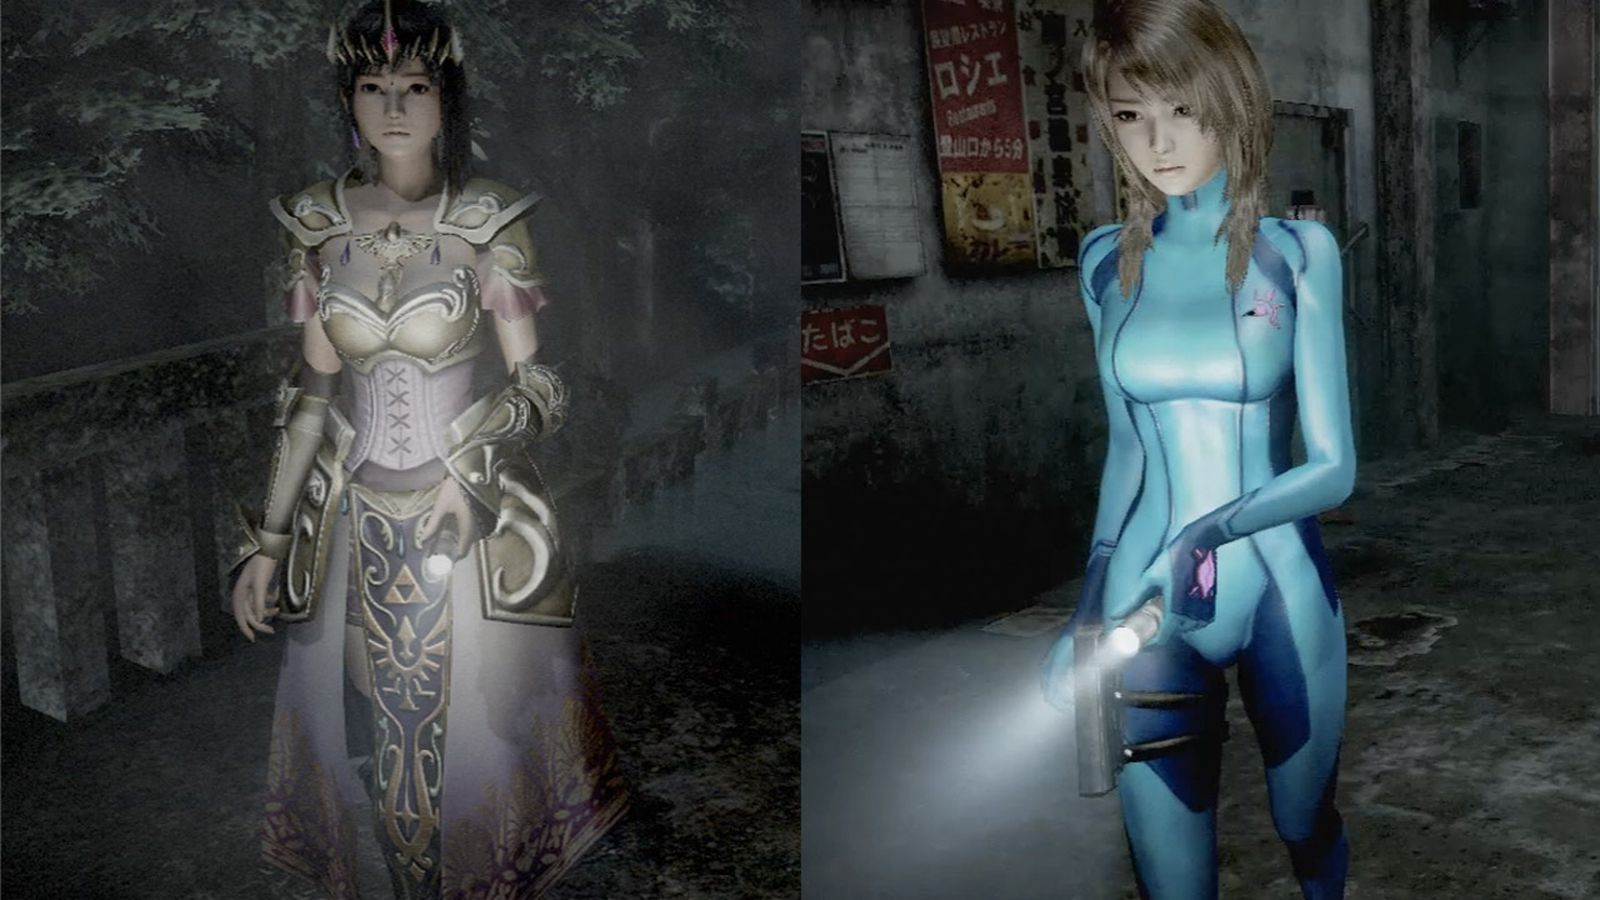 Girls In Lingerie Pc Wallpapeer Metroid And Zelda Costumes Coming To Fatal Frame For Wii U